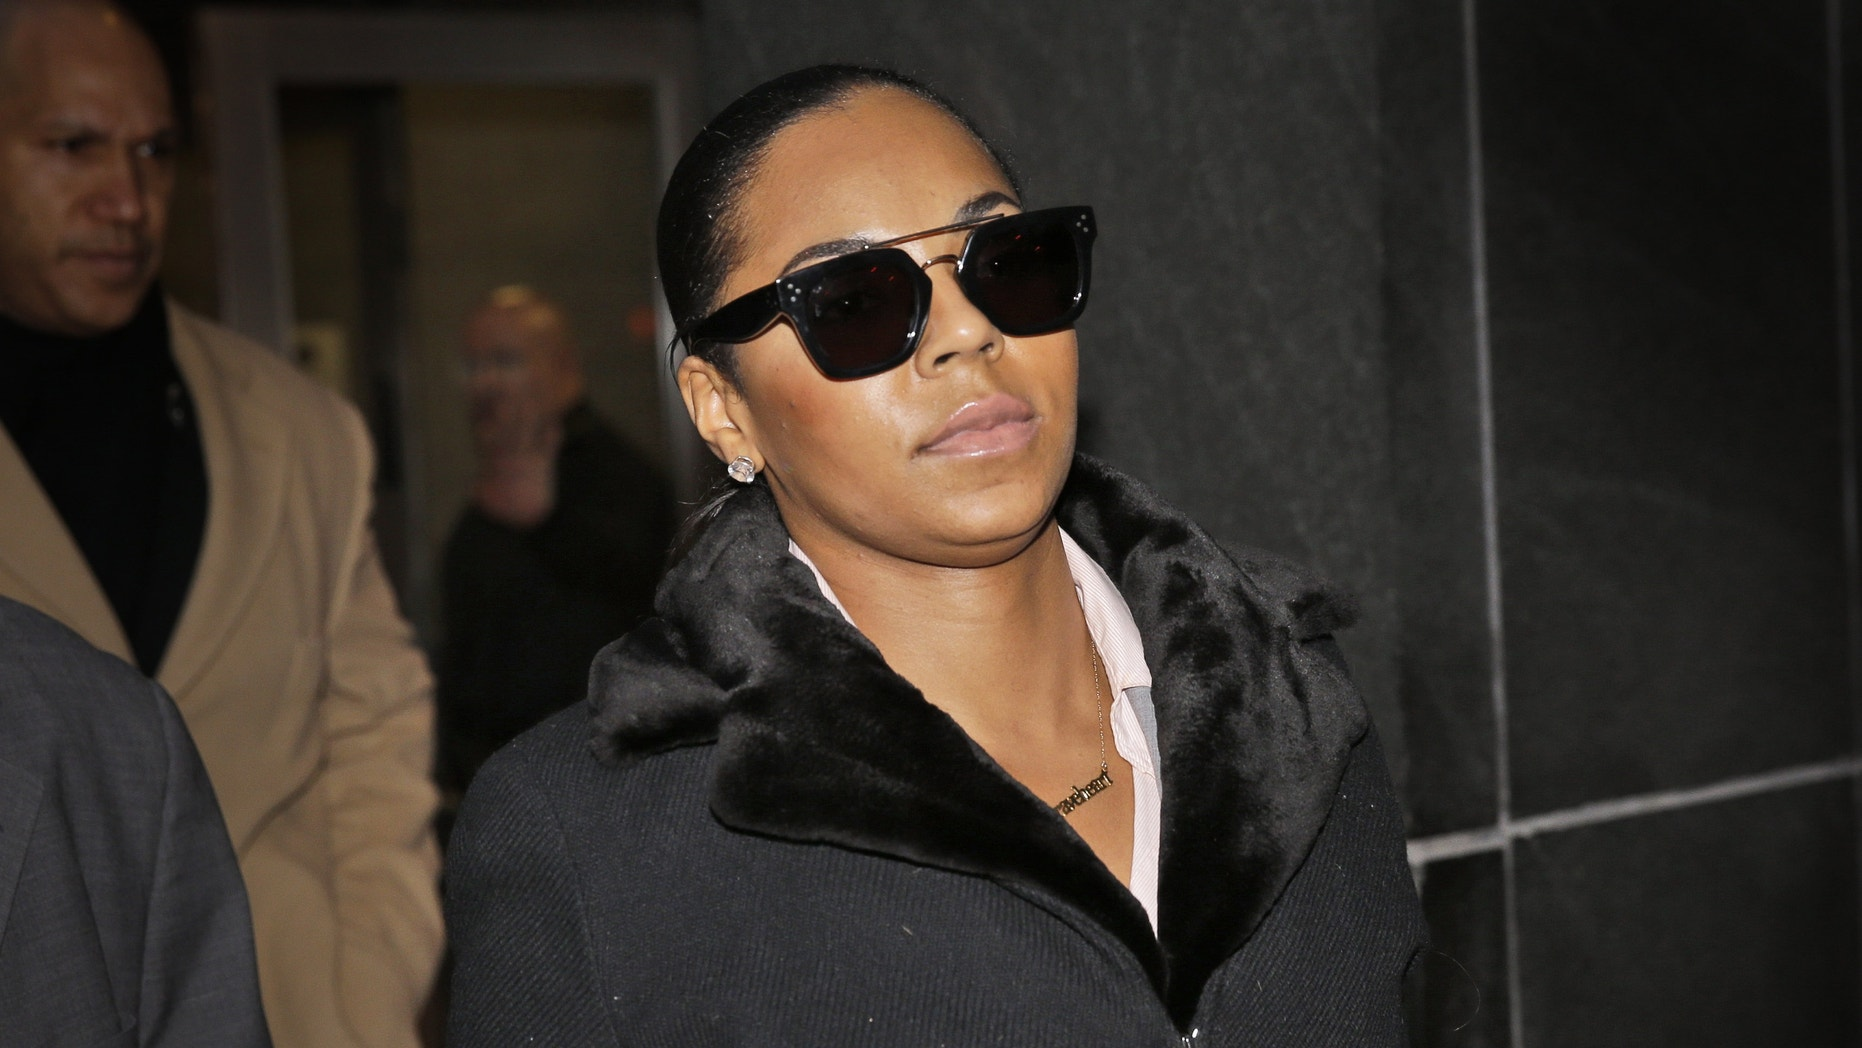 Dec 16, 2014. Singer Ashanti leaves the courthouse after testifying at Devar Hurd's trial in New York.